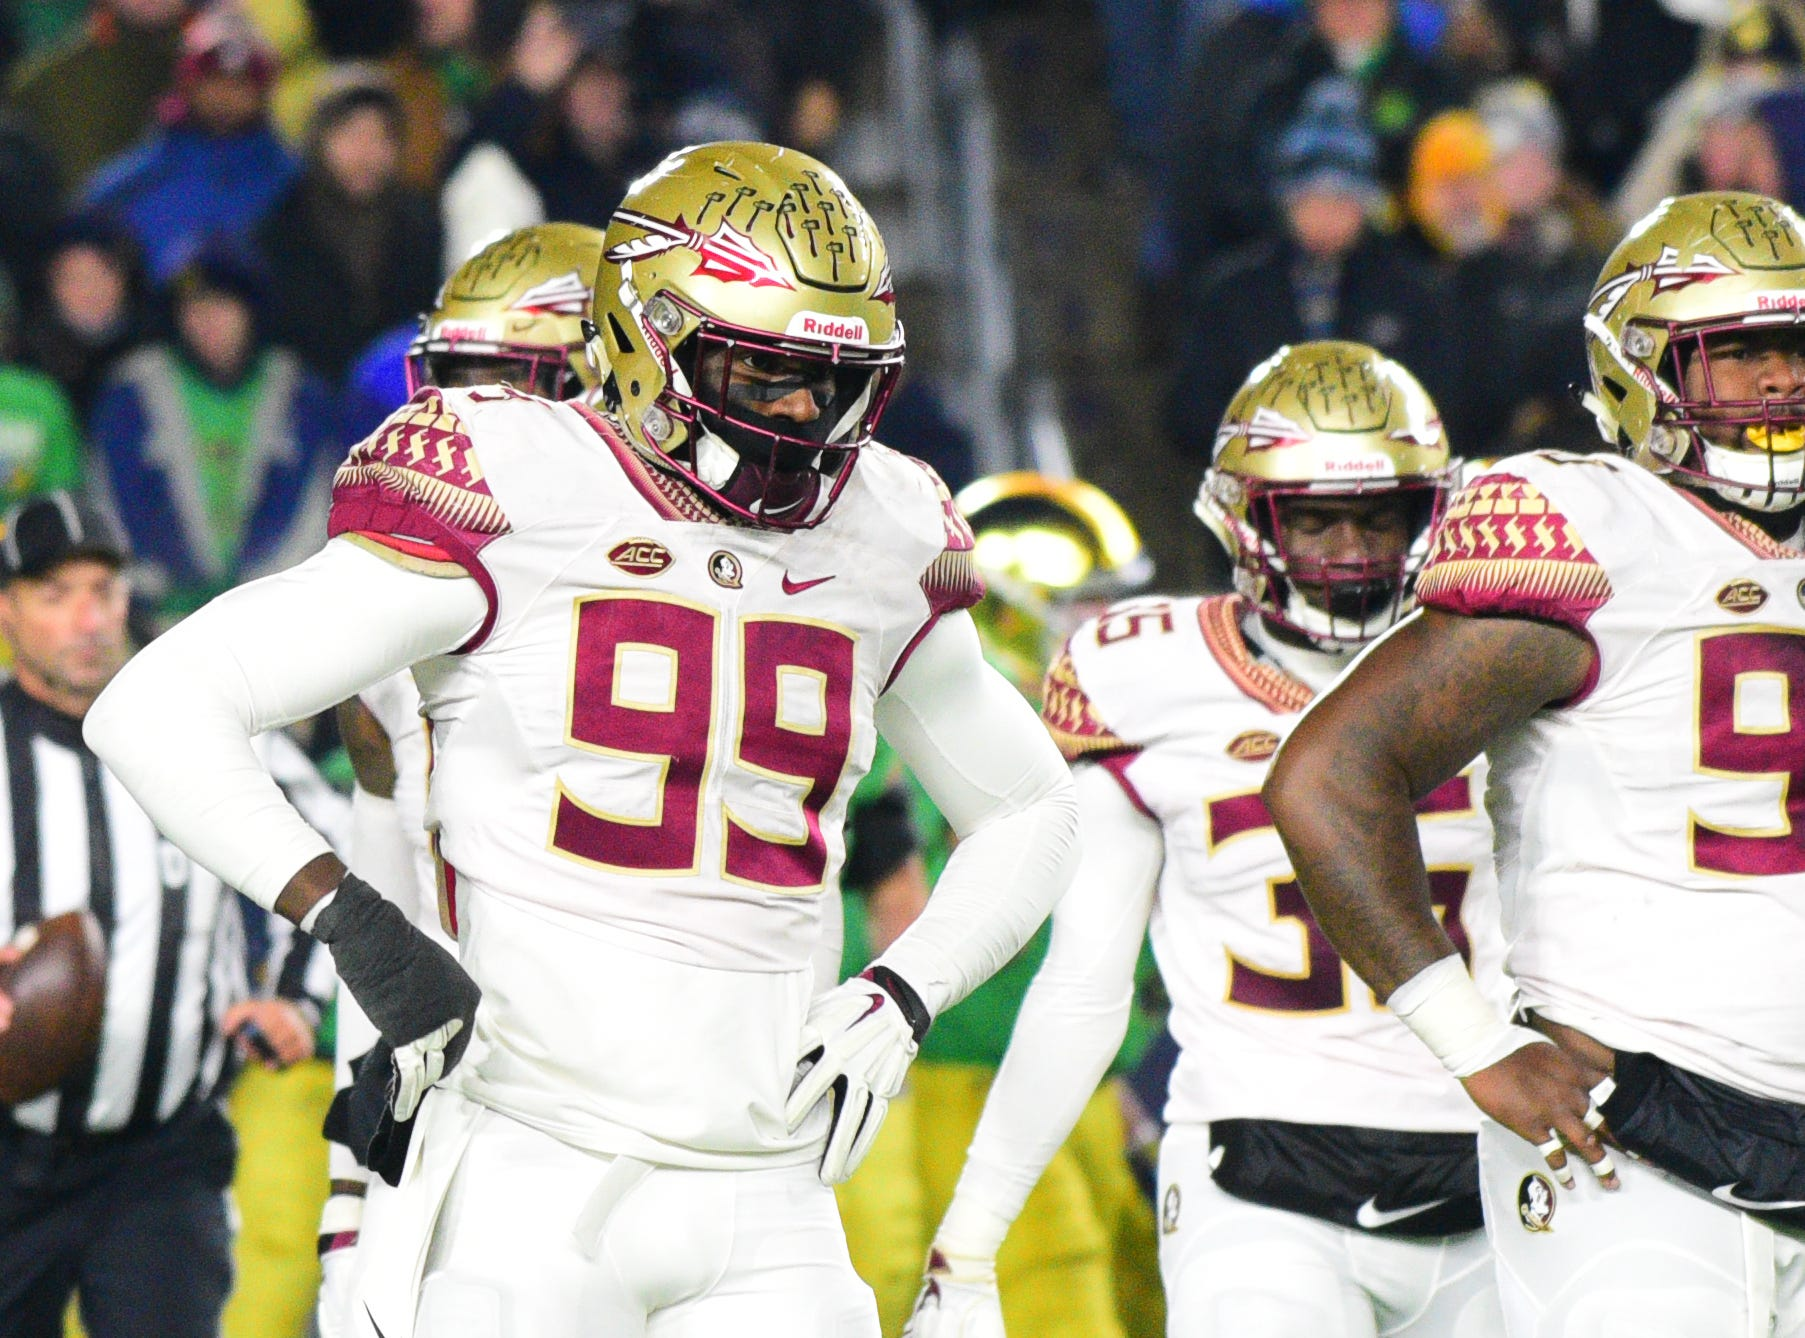 FSU junior defensive end Brian Burns, 99, expresses frustration as Notre Dame score their 4th touchdown of the game in the 2nd quarter in South Bend on Saturday.